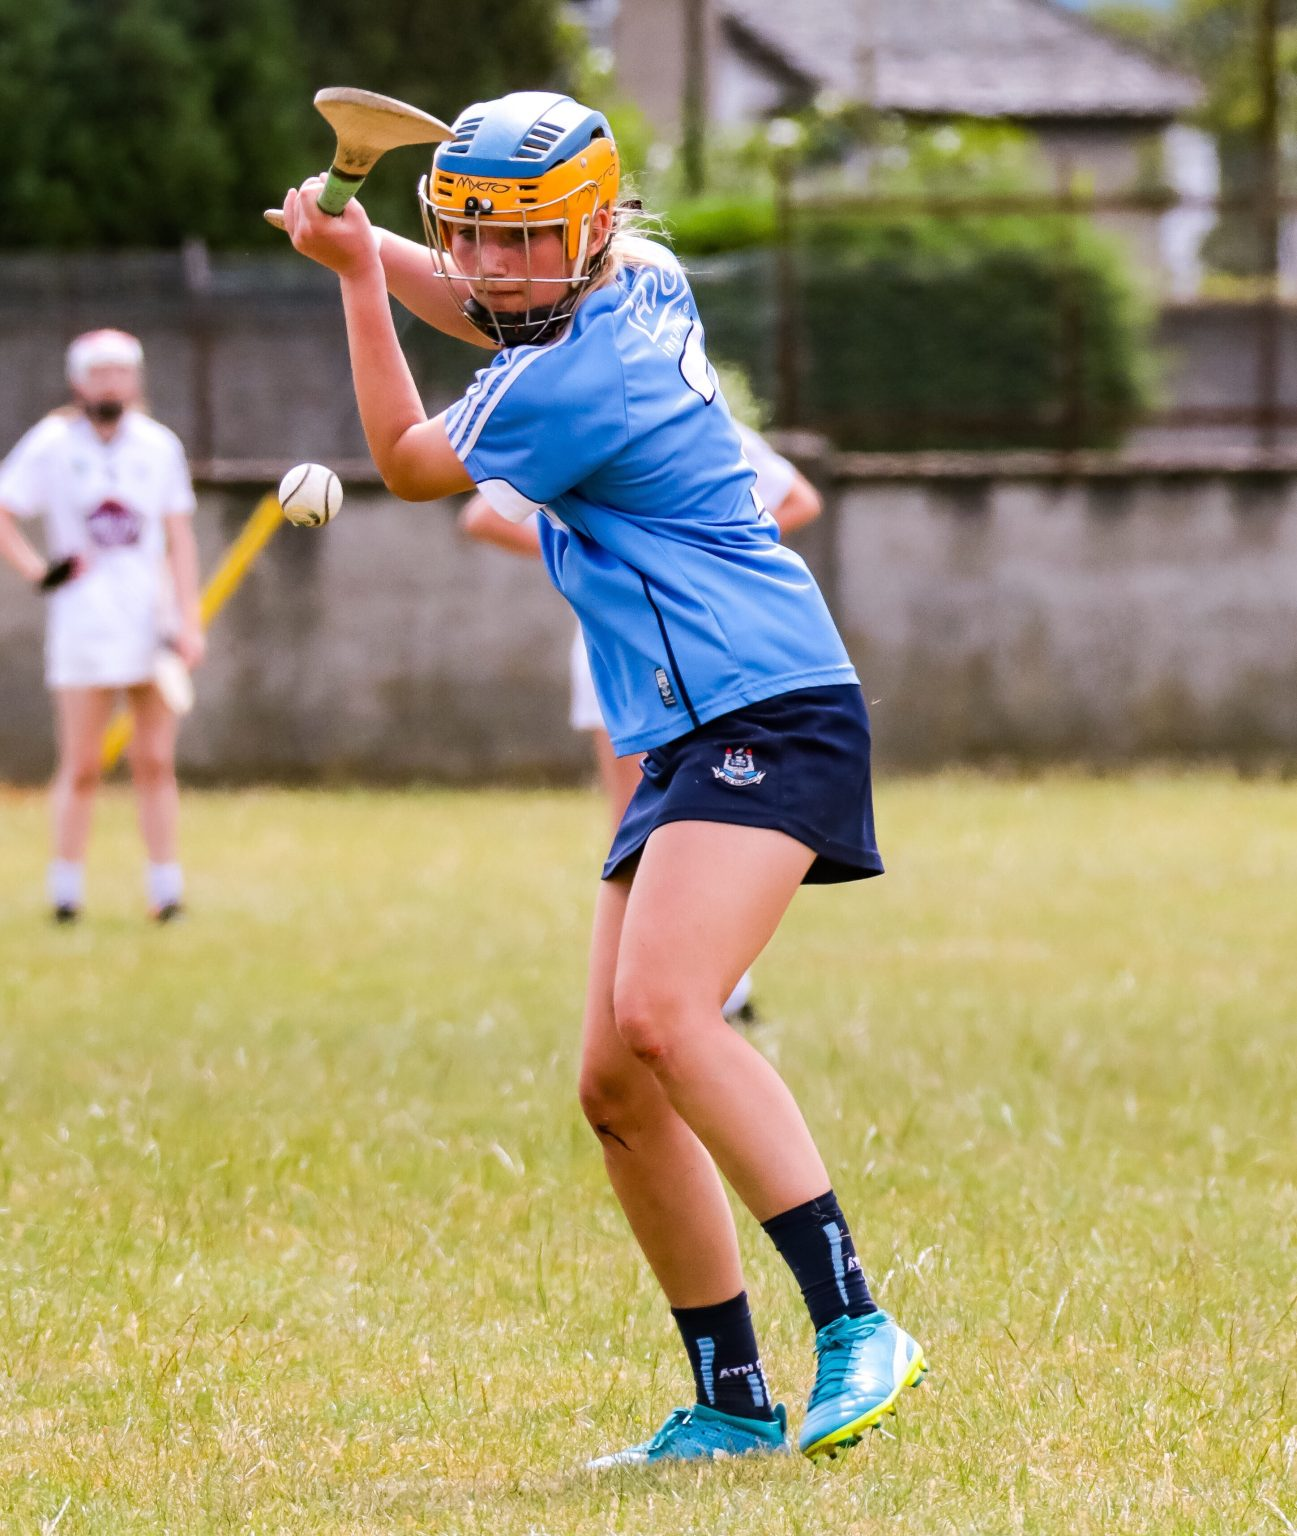 Dublin Minor Camogie Player in a sky blue jersey, navy skort and blue and yellow helmet about to strike the ball the Dublin Minors will be aiming to Claim two Leinster titles